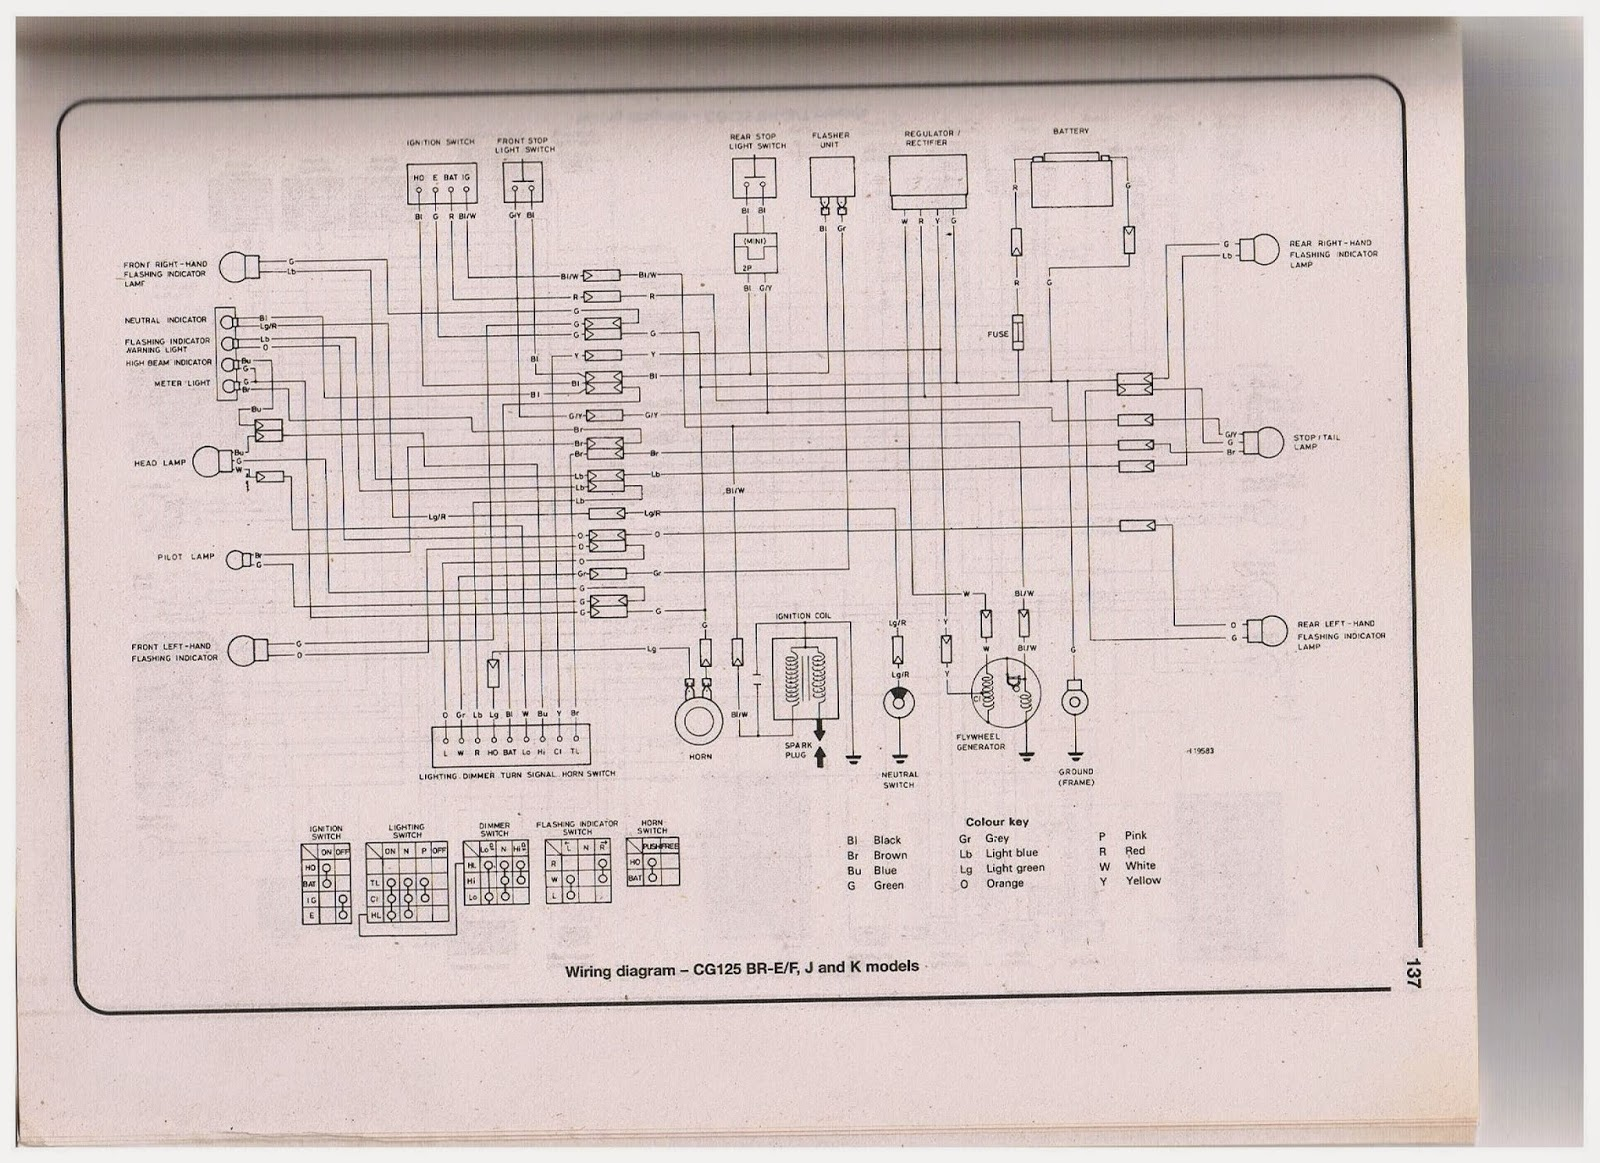 medium resolution of honda cg 125 owner blog honda cg 125 wiring diagrams andhonda cg125 br s t models wiring